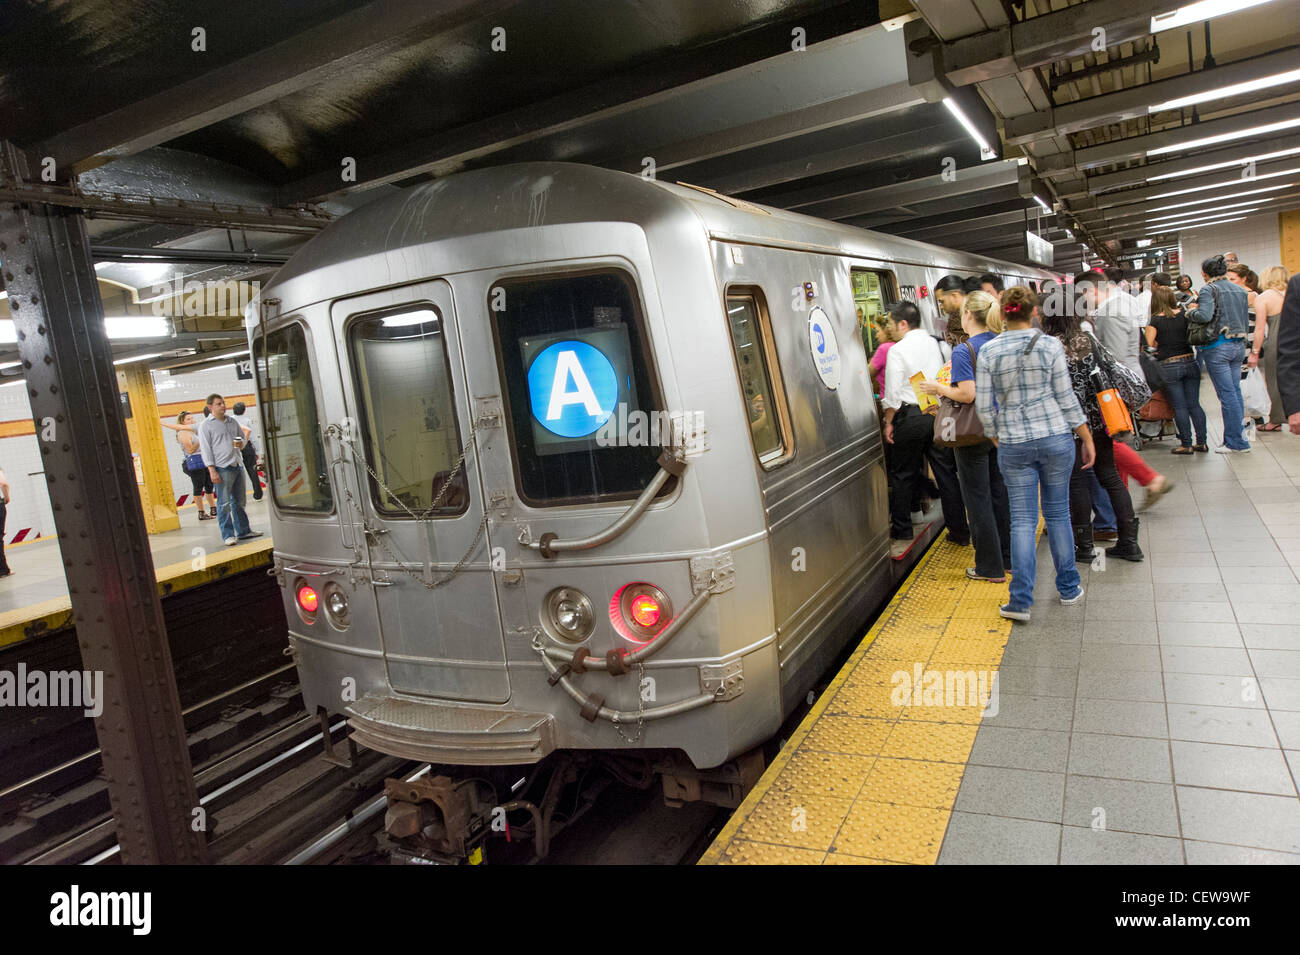 People boarding the A train New York subway line, New York ...